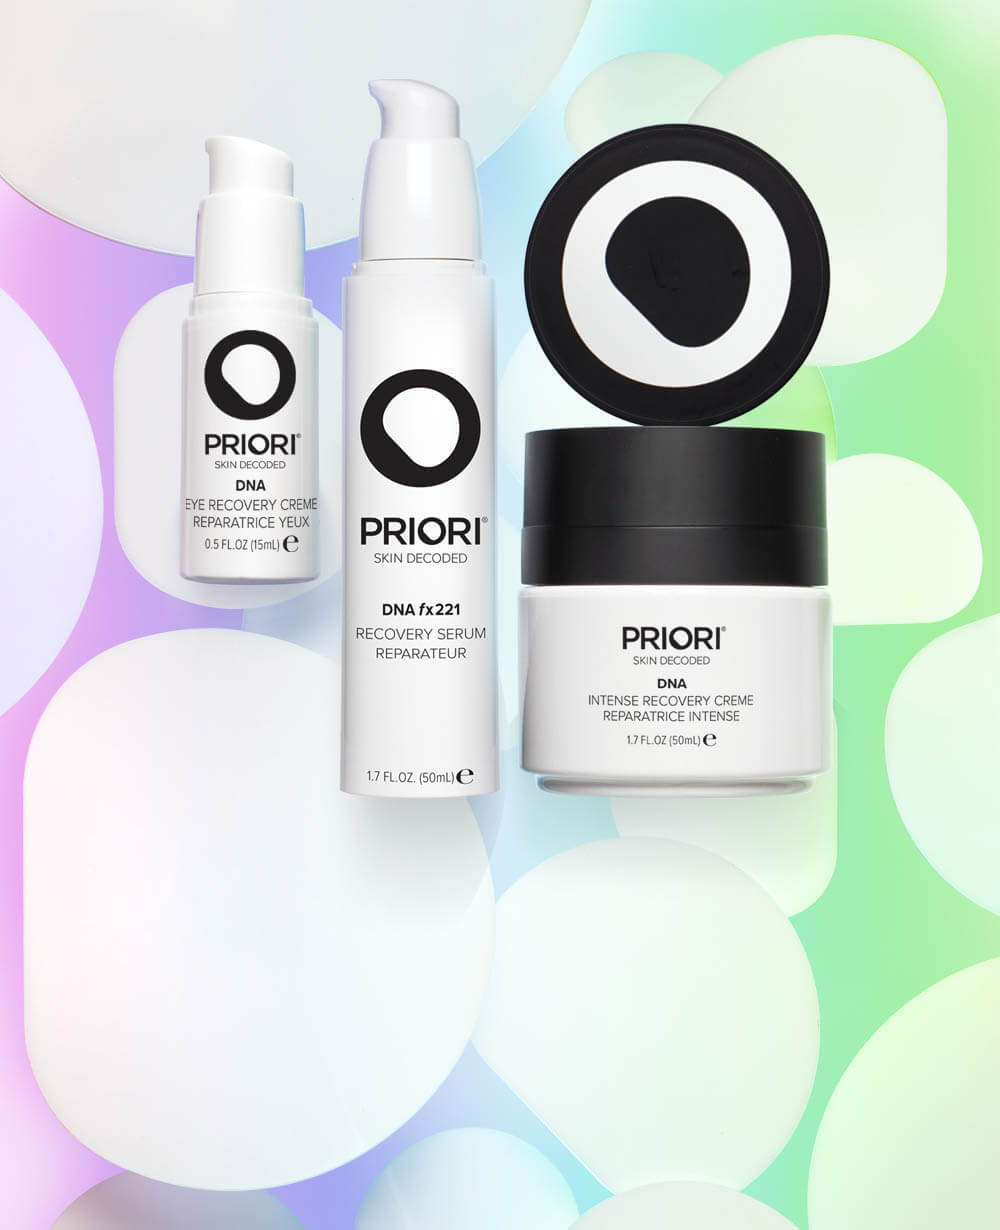 Priori GPF Skin System  - total protection and recovery at the cellular level